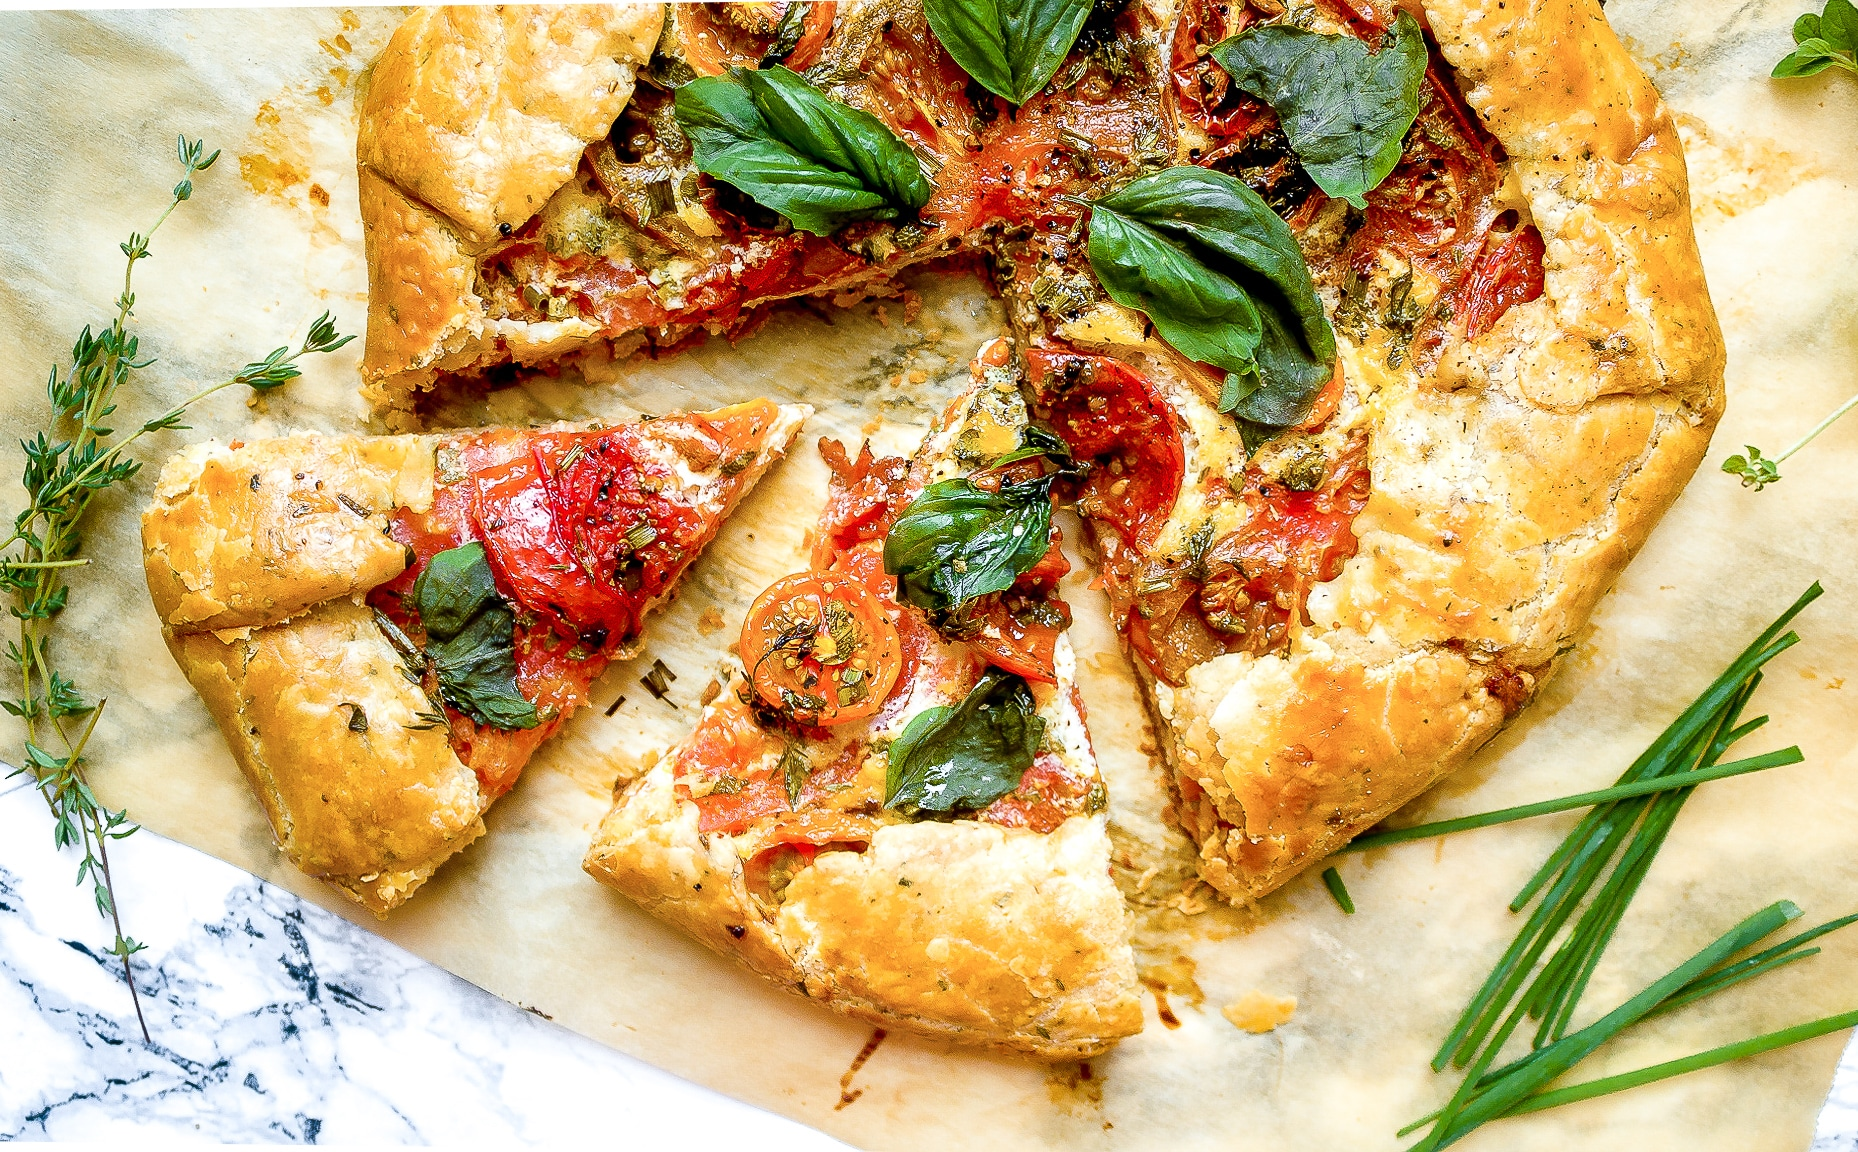 Heirloom Tomato Galette with Herbs